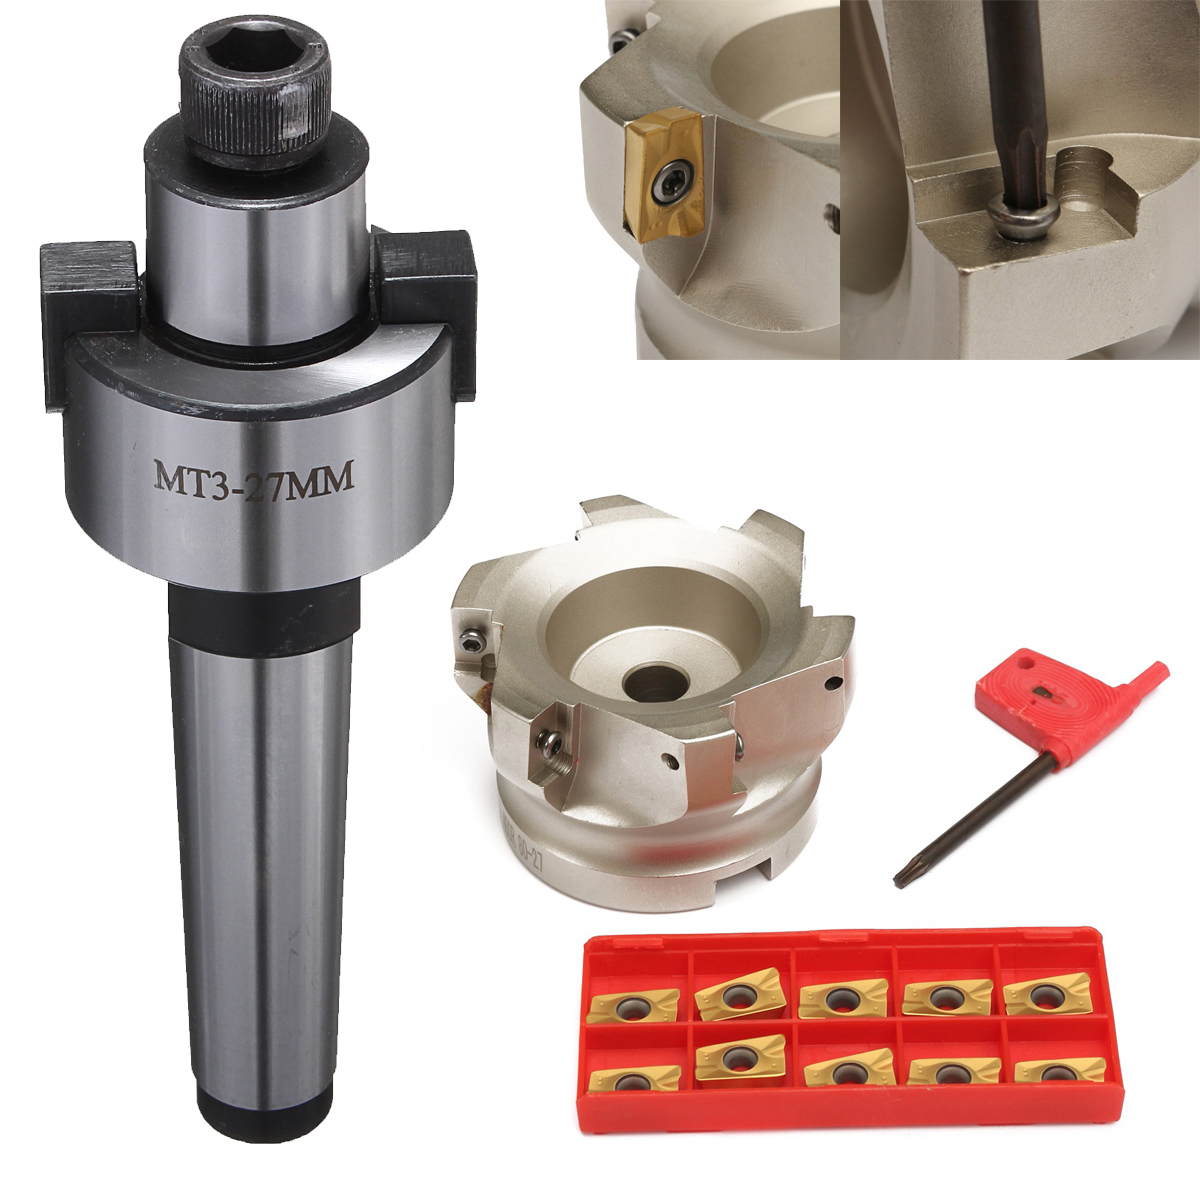 цены 1pc MT3 Morse Taper Shank + 400R-80-27 Face End Mill 80mm 90Degree Milling Cutter + 10pcs Insert with T15 Wrench